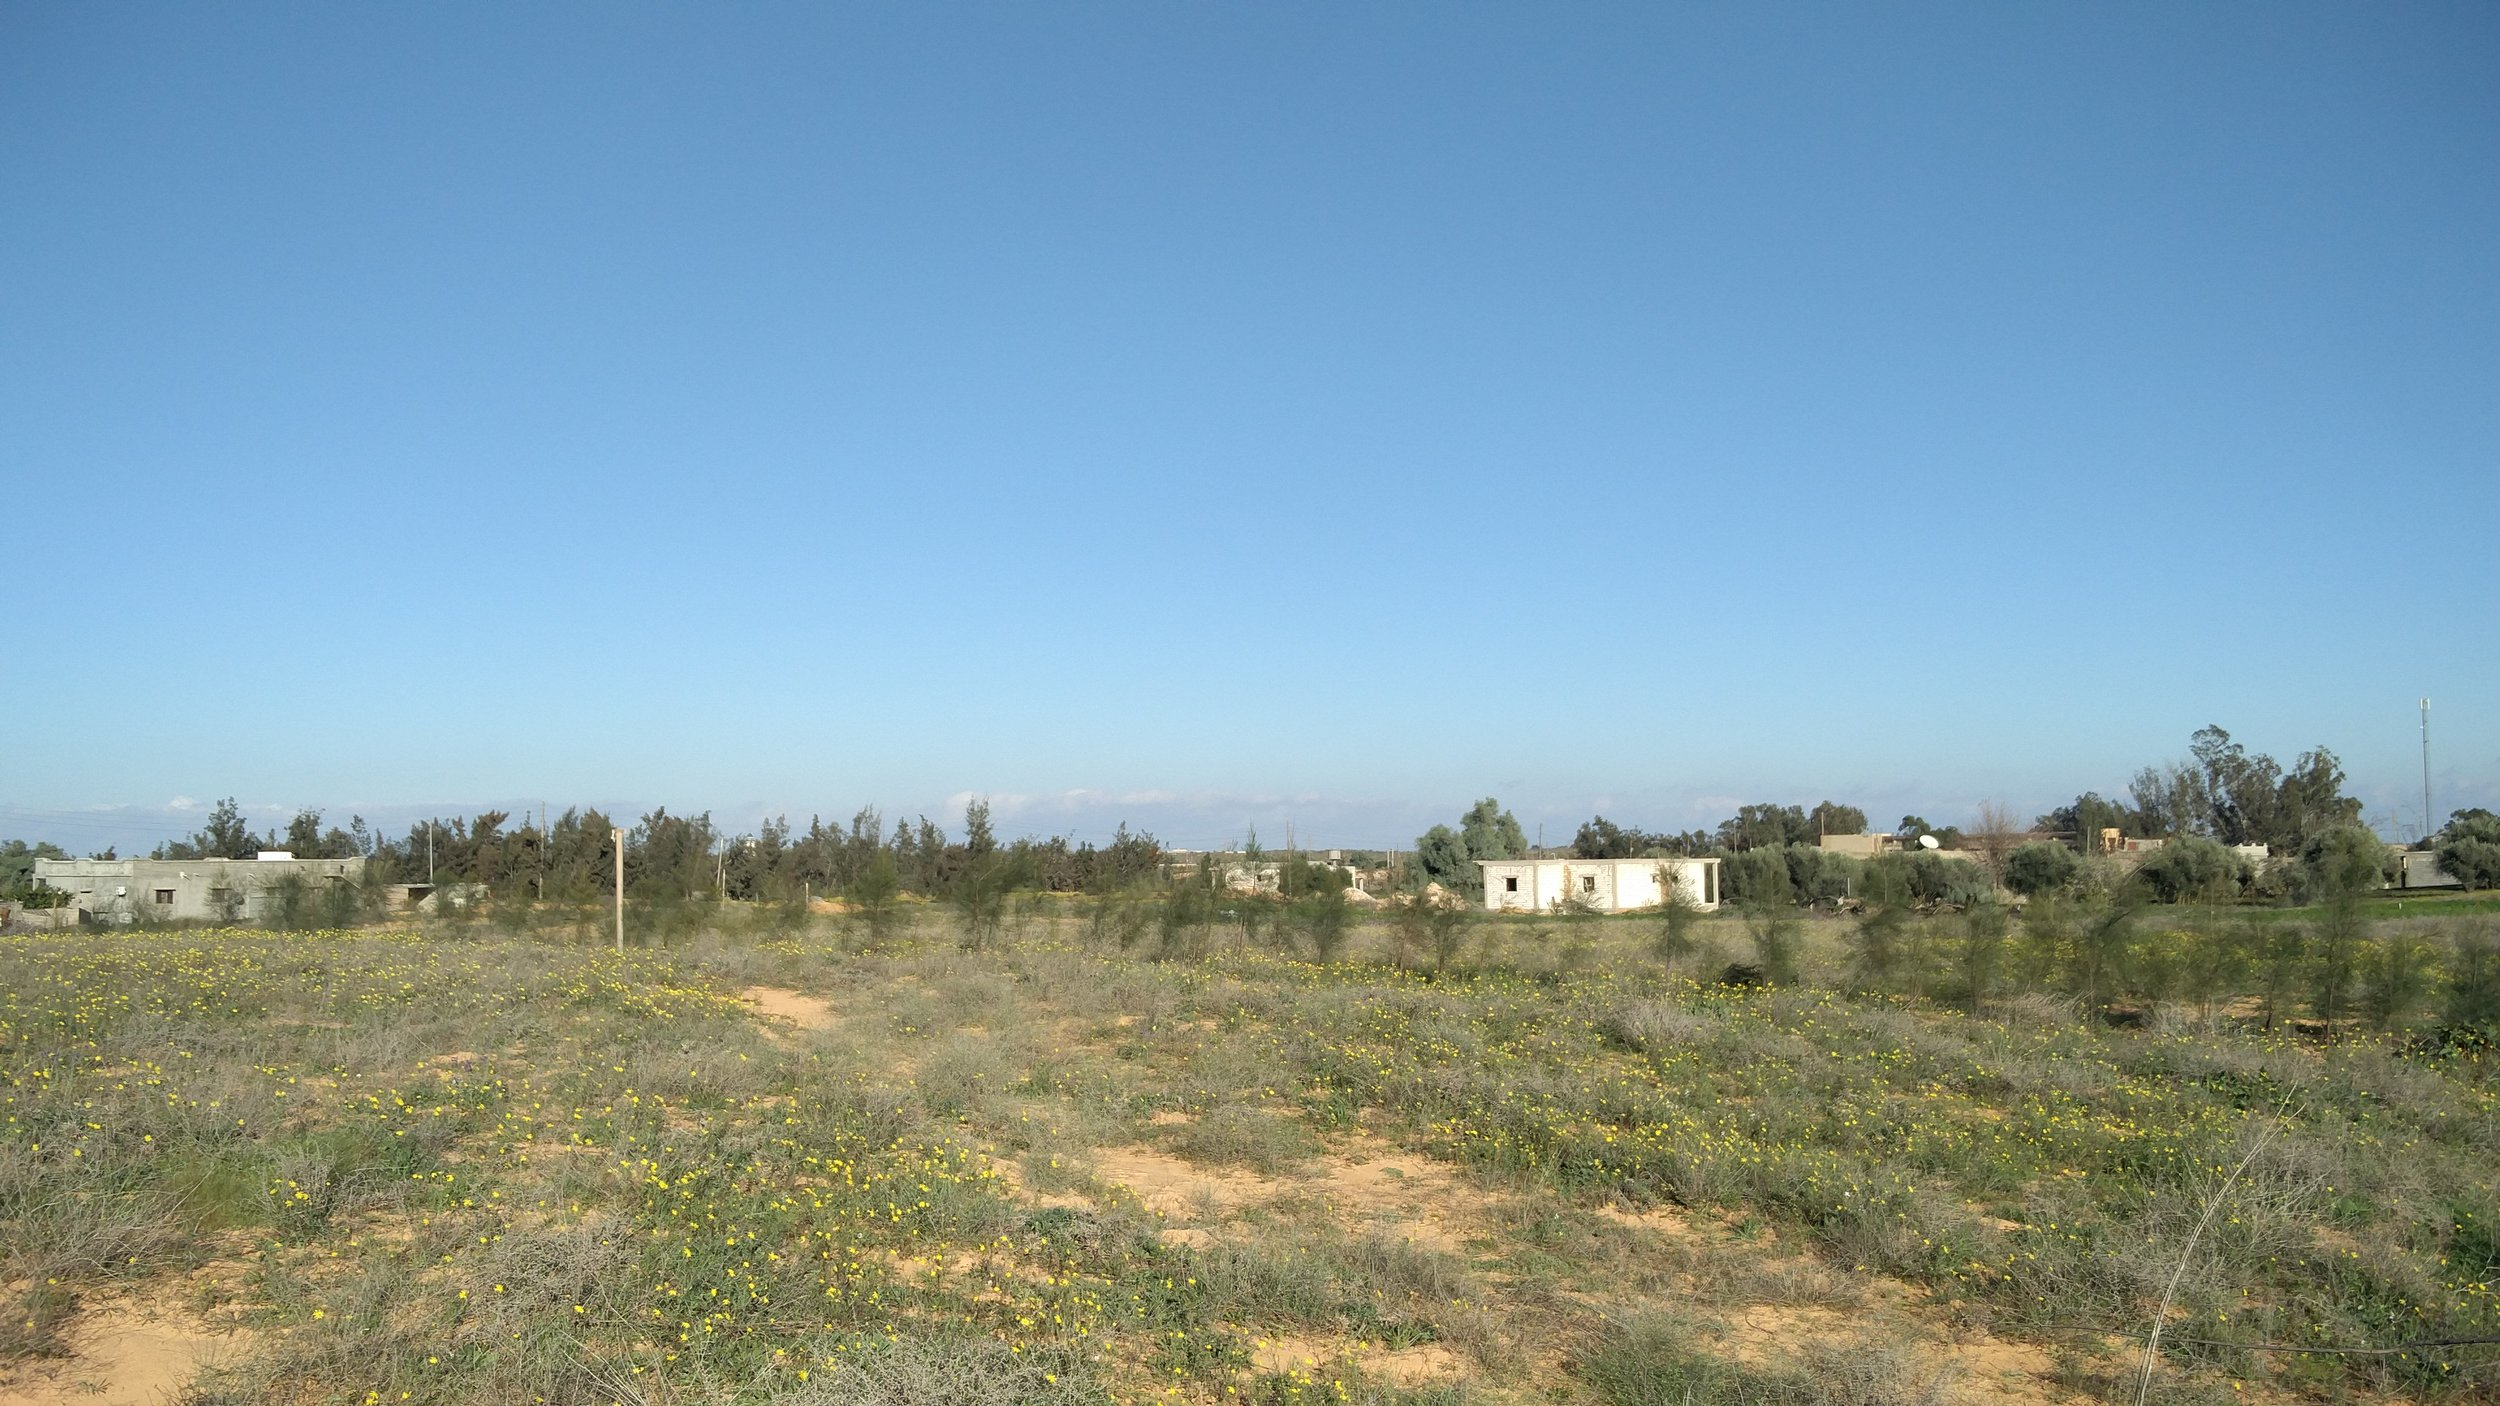 Image of the view from a ranch in the poet's hometown in Libya.